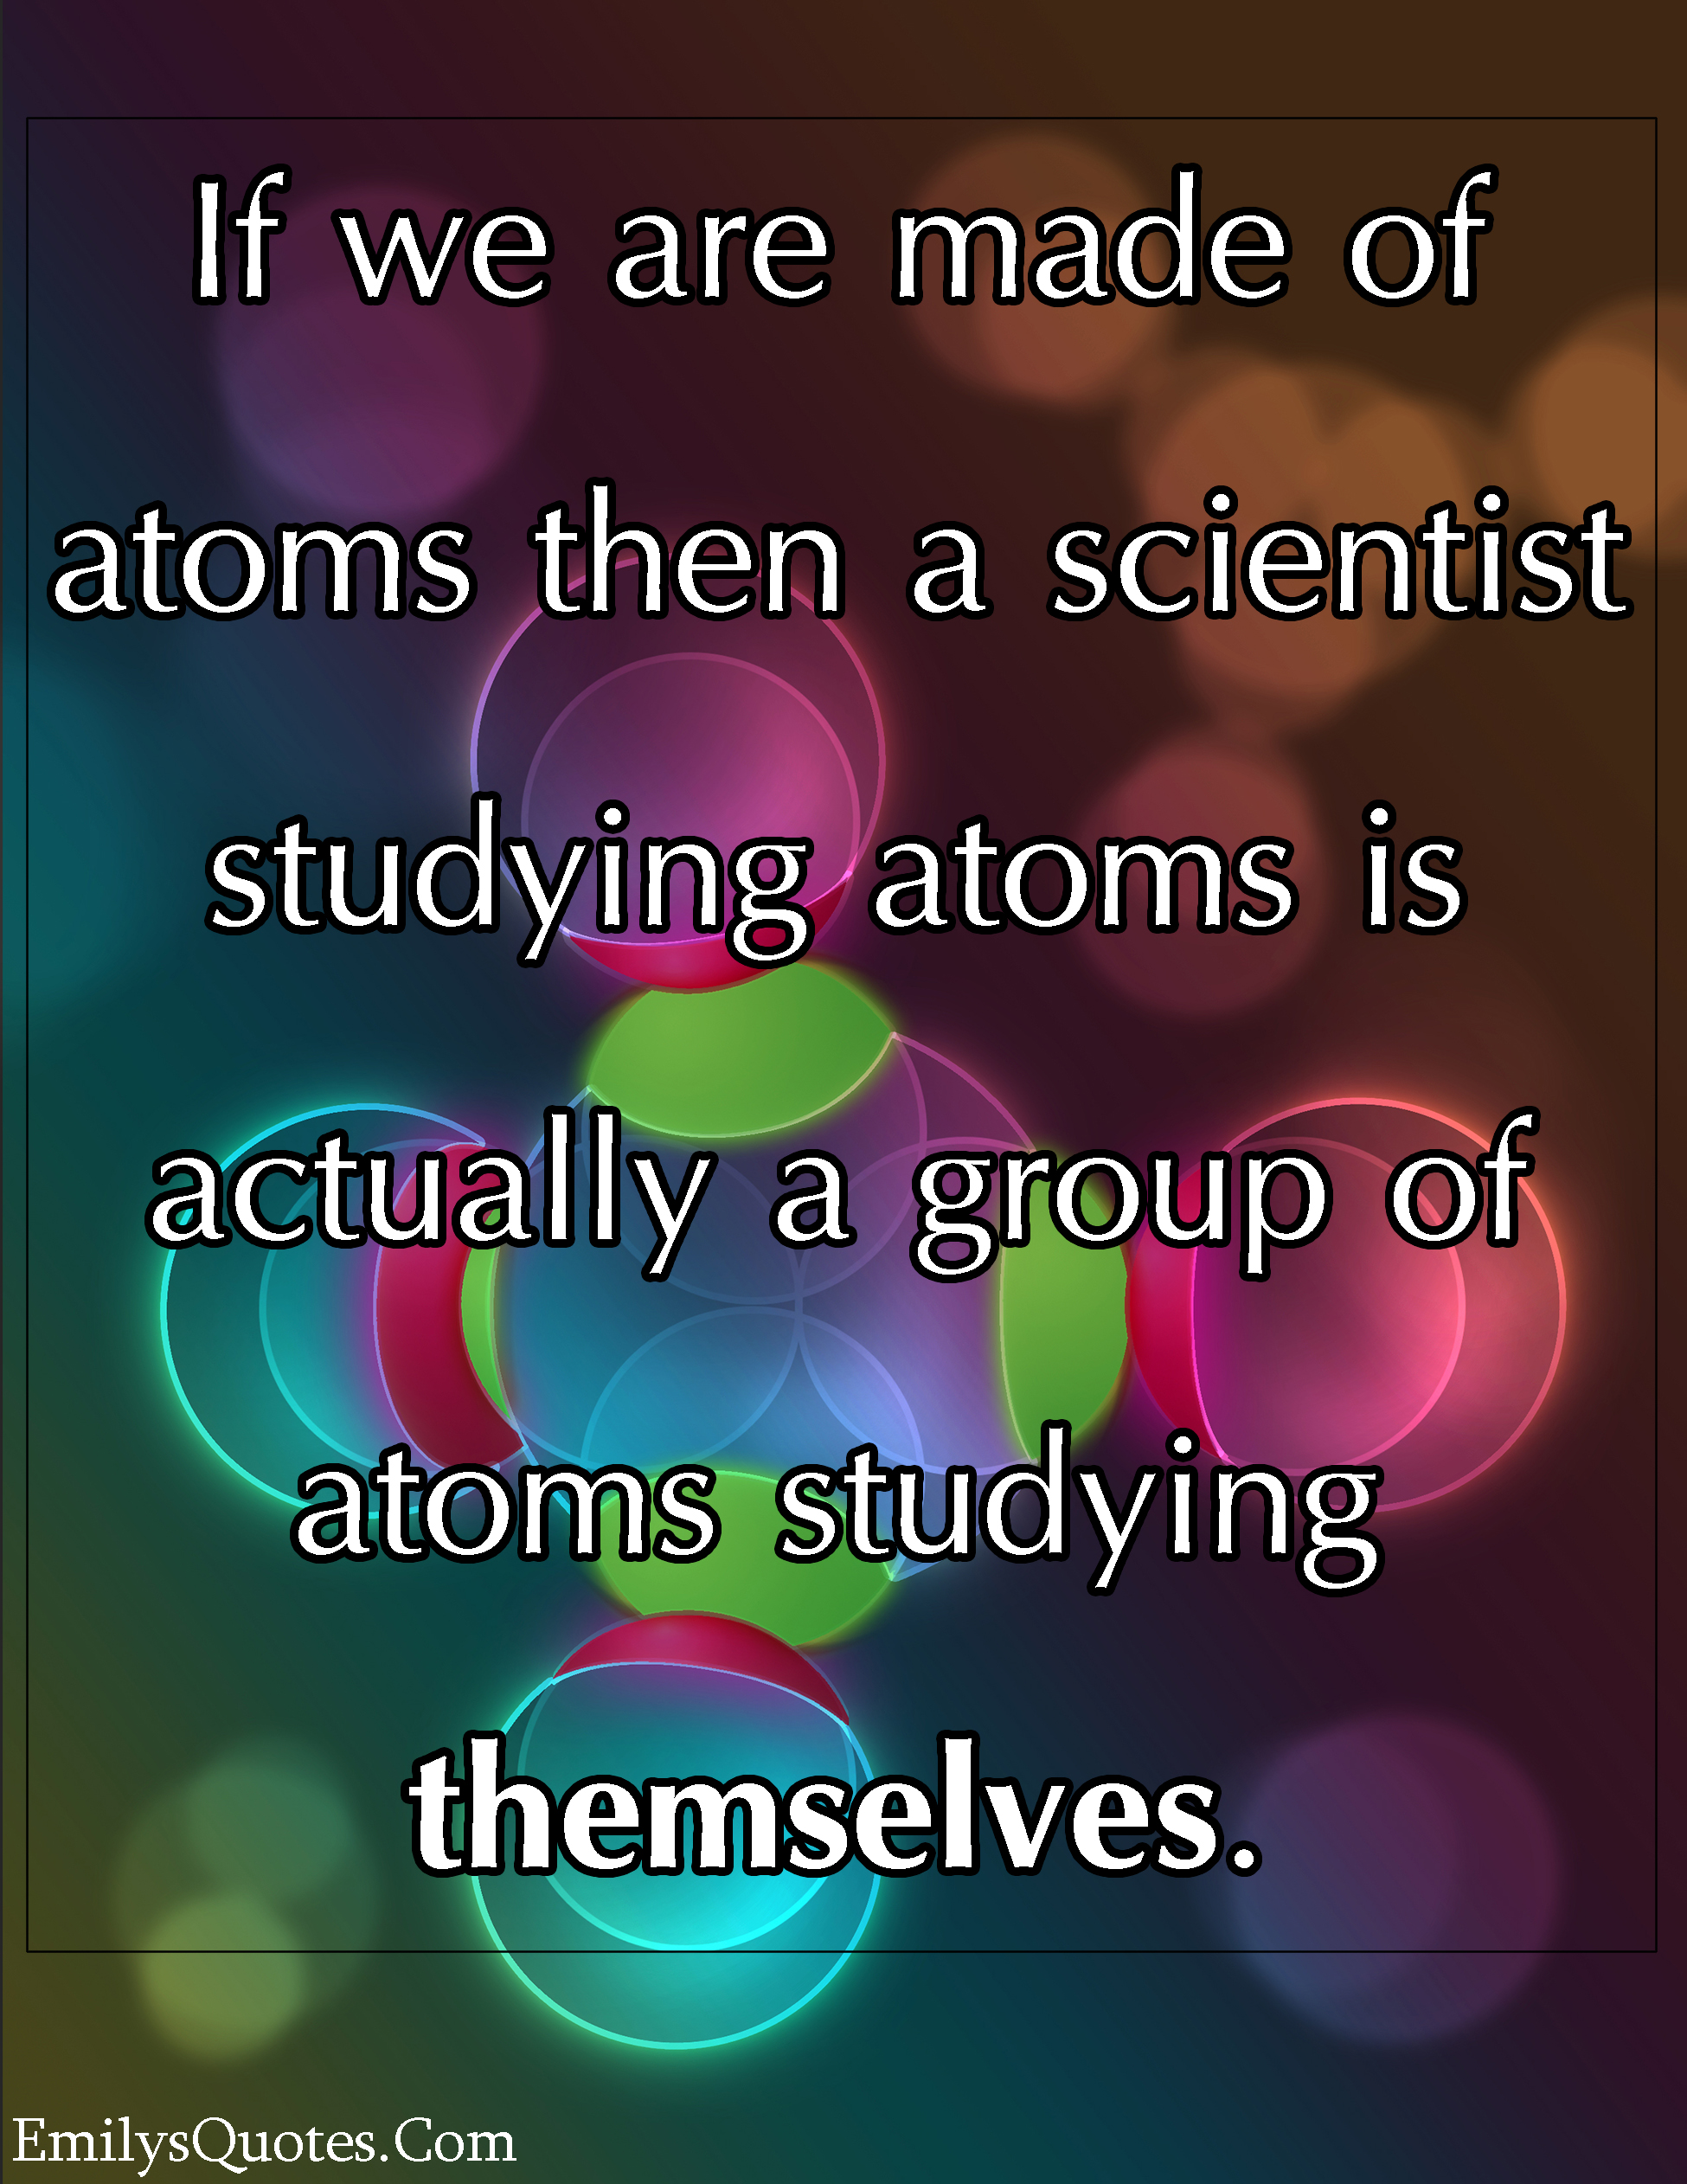 TOP 11 STUDY GROUP QUOTES | A-Z Quotes